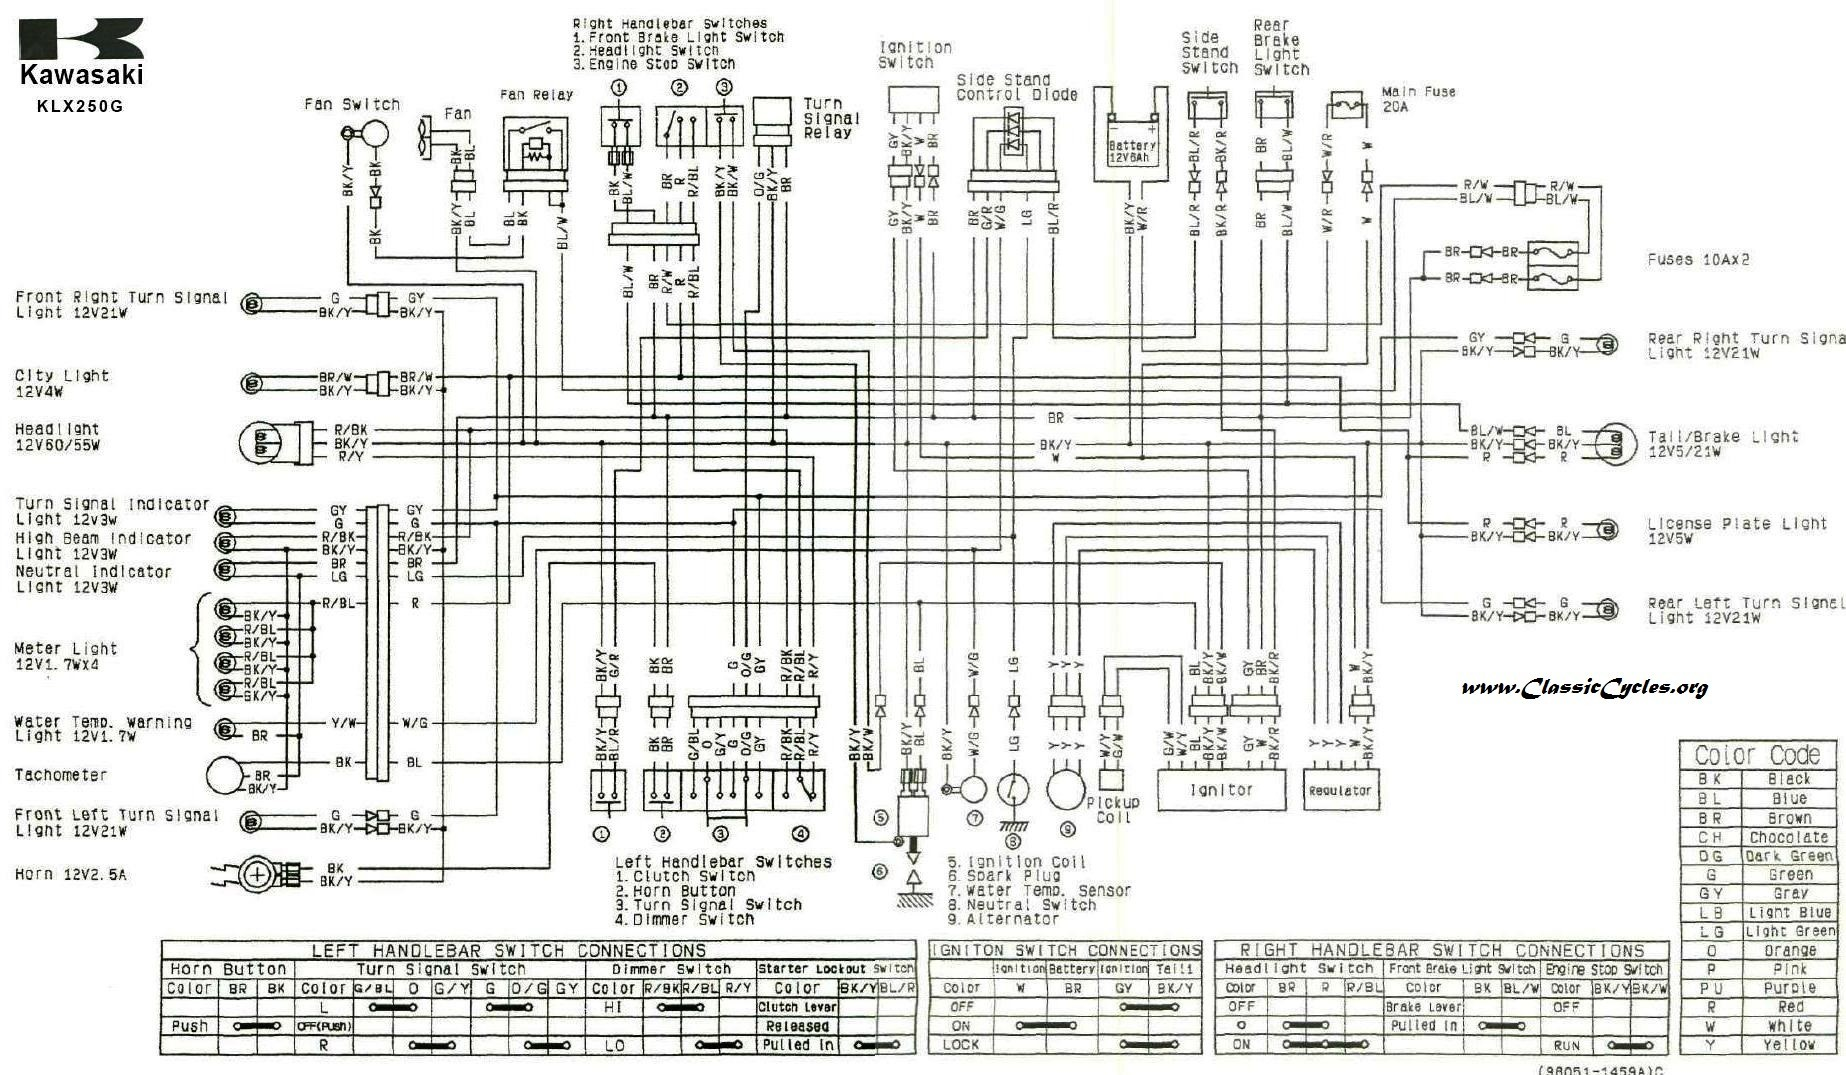 Kawasaki Bayou 220 Engine Diagram Wiring Diagram Kawasaki Bayou 220 Best Kawasaki Bayou 300 Wiring Of Kawasaki Bayou 220 Engine Diagram Wiring Diagram Kawasaki Bayou 220 New Electrical Wiring Circuit